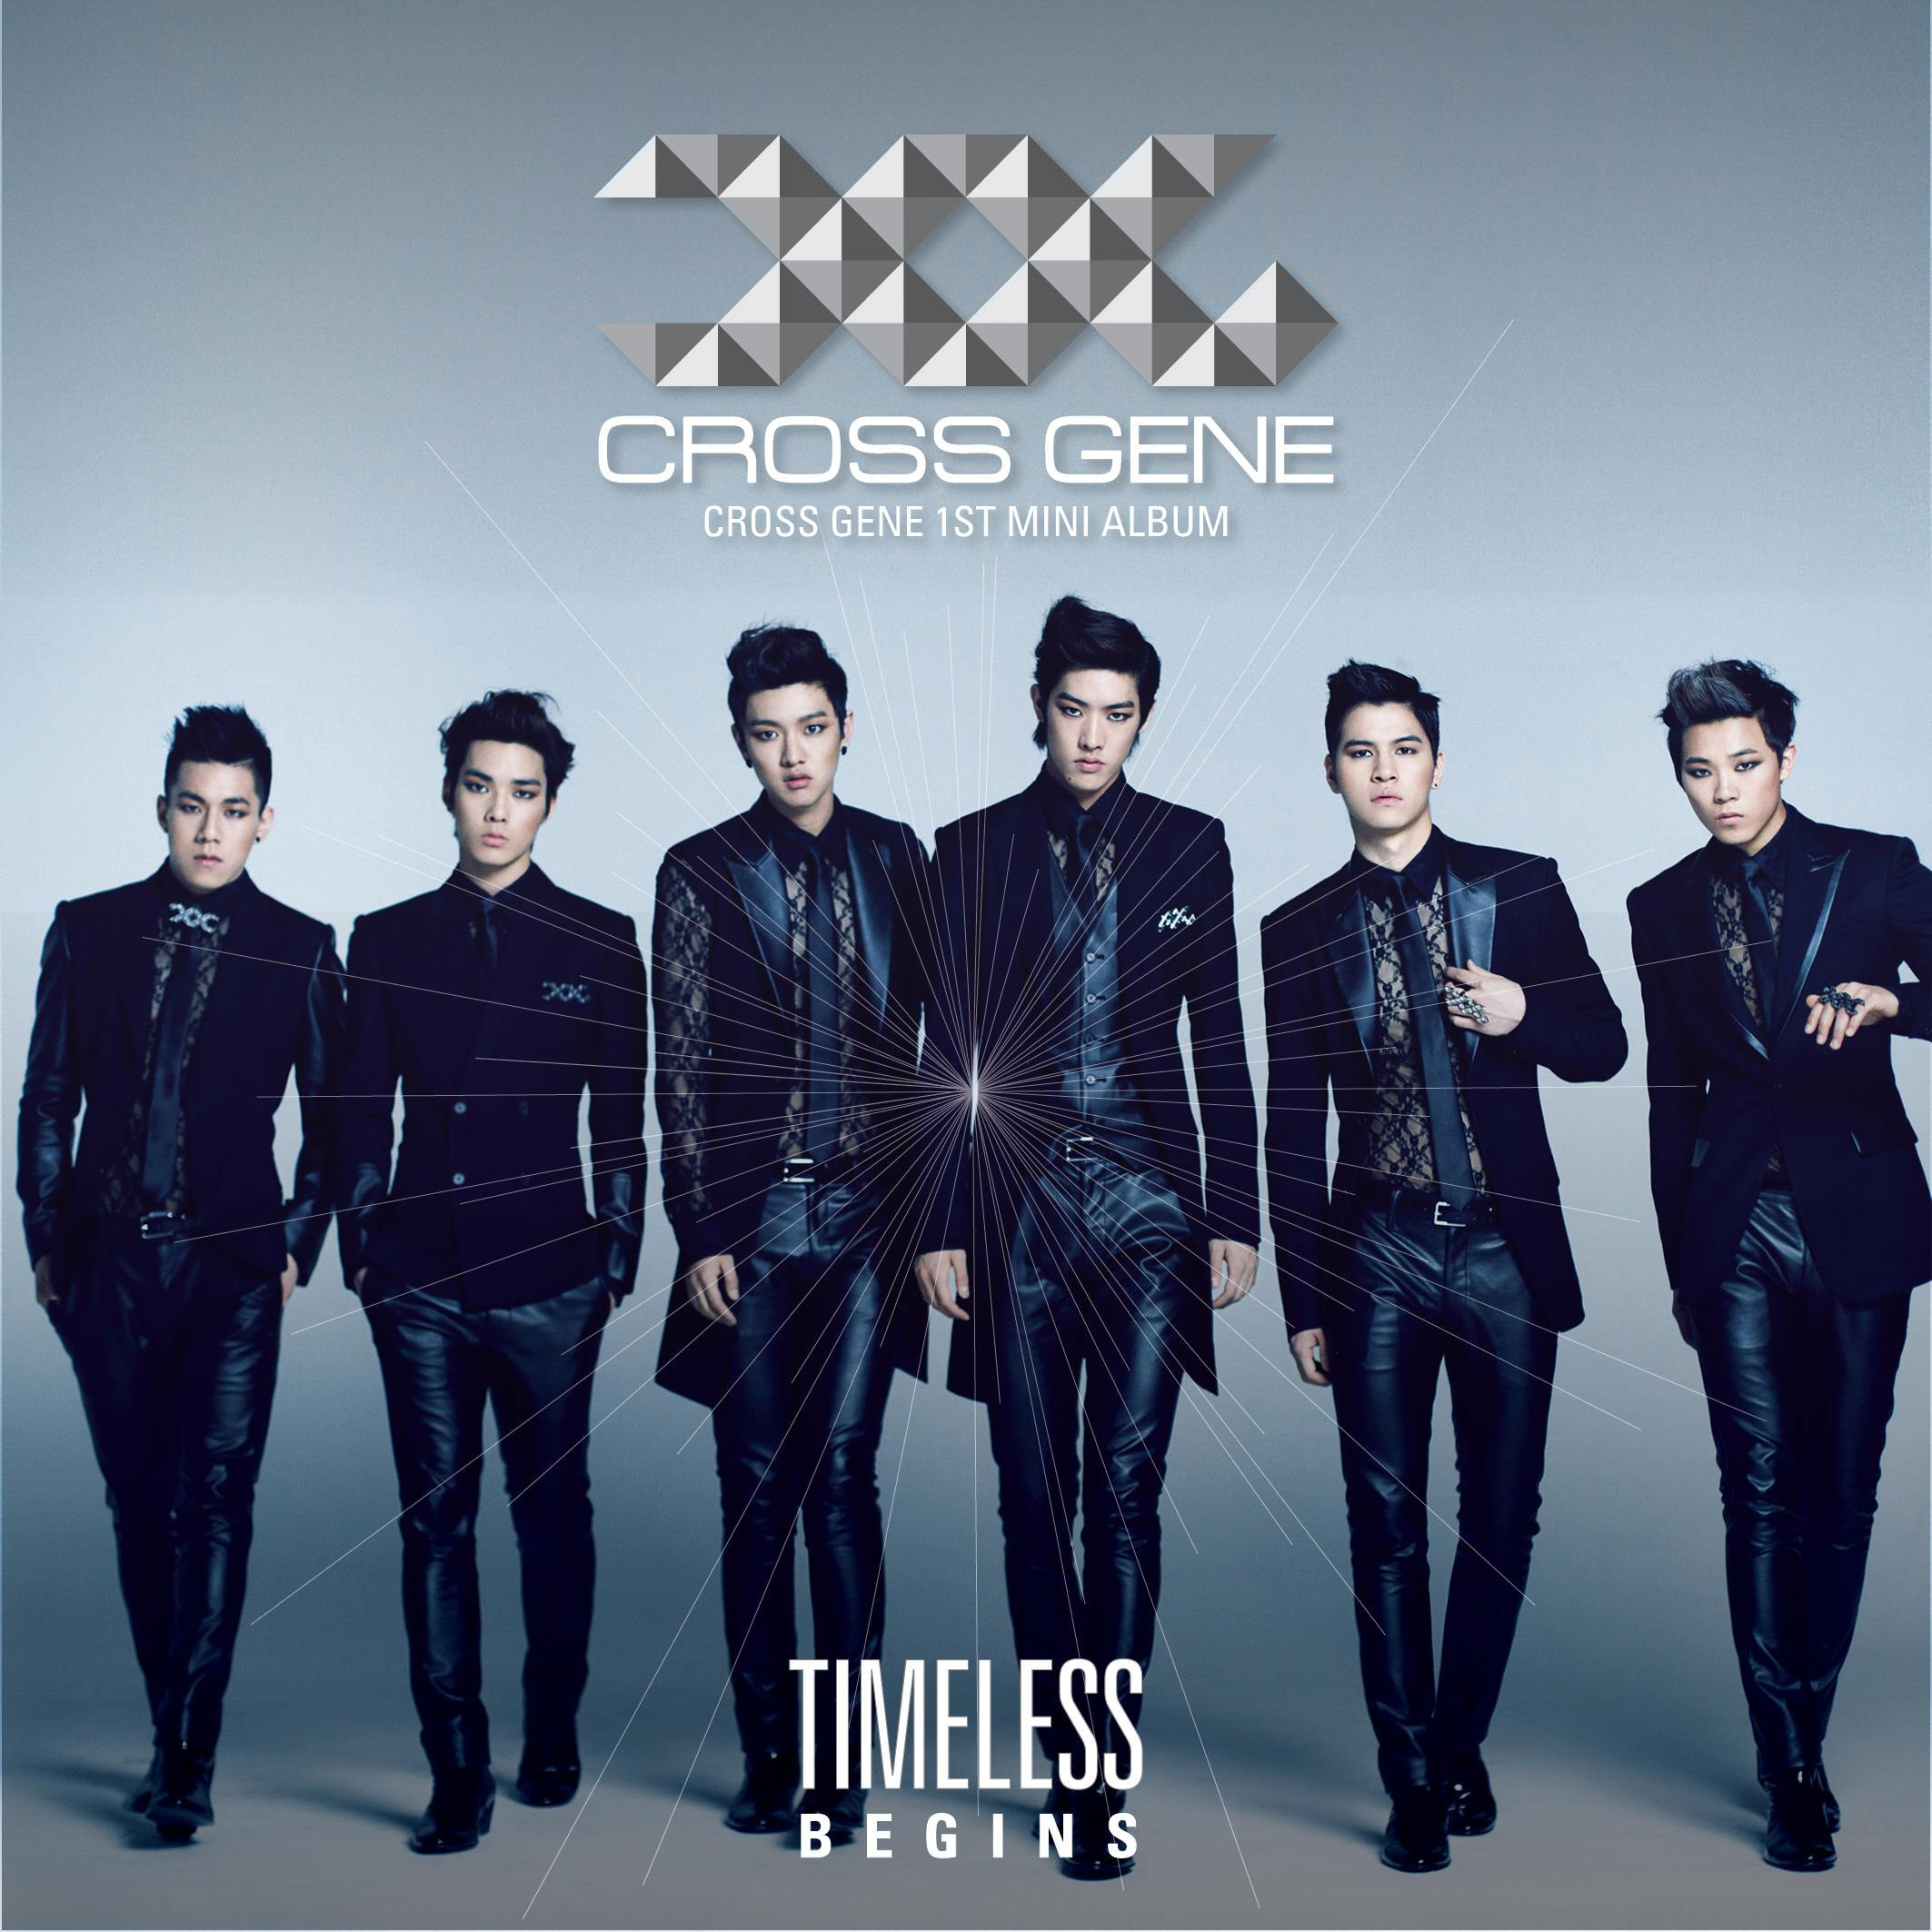 [Mini Album] CROSS GENE - Timeless: Begins